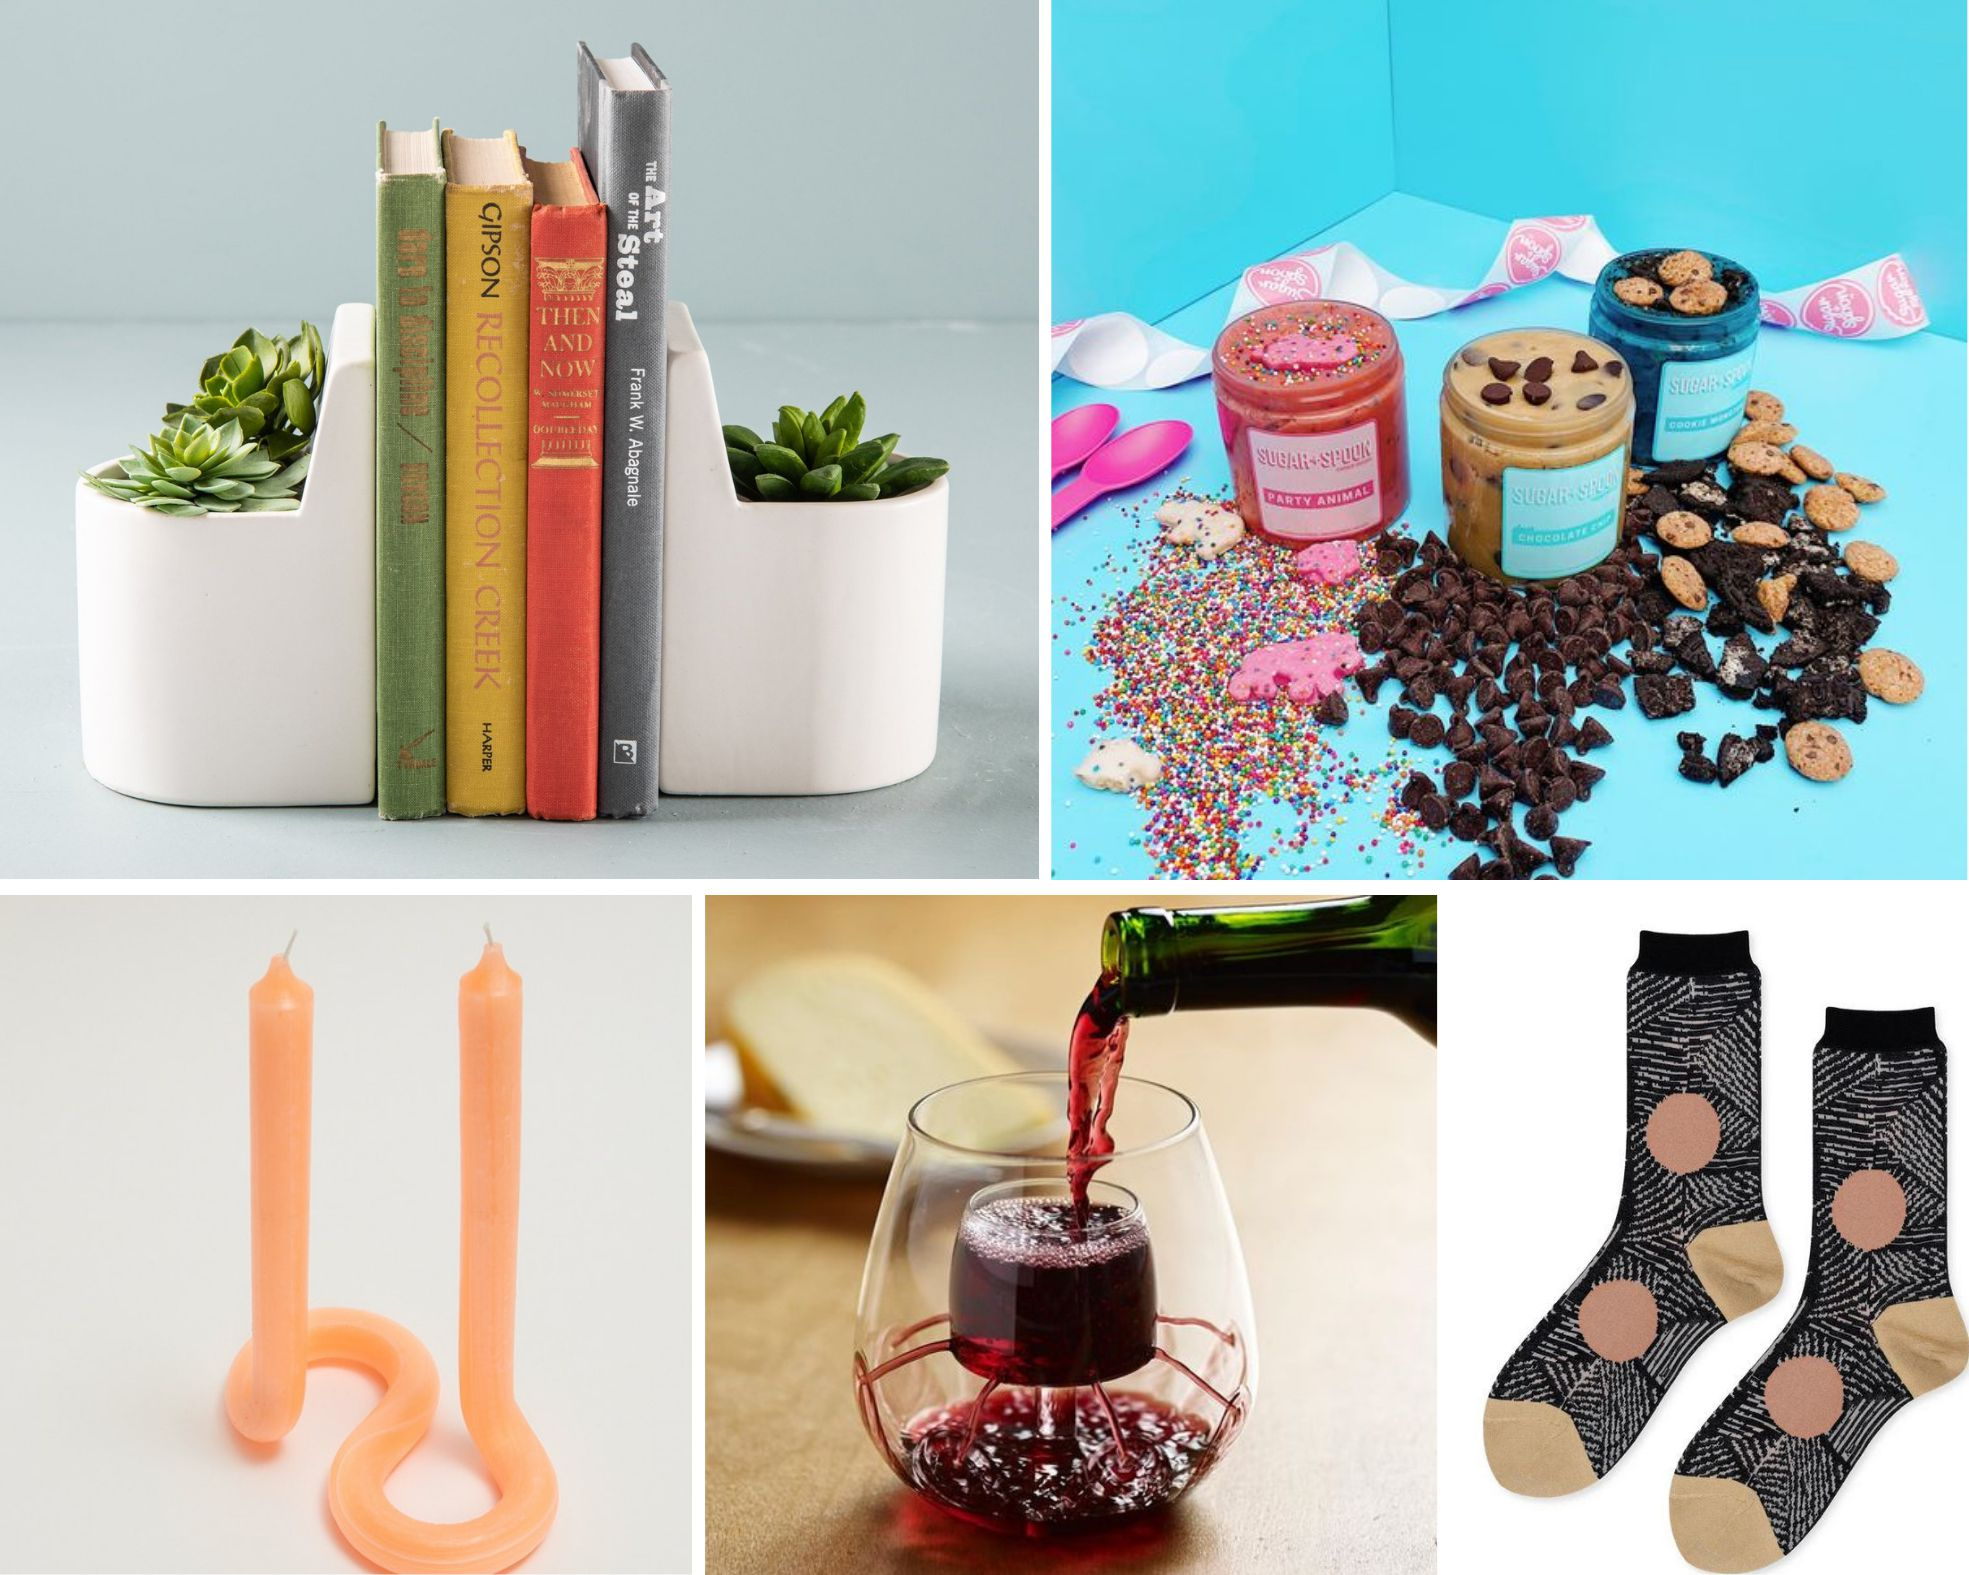 Pinterest's Most-Searched Holiday Gift Ideas for Home